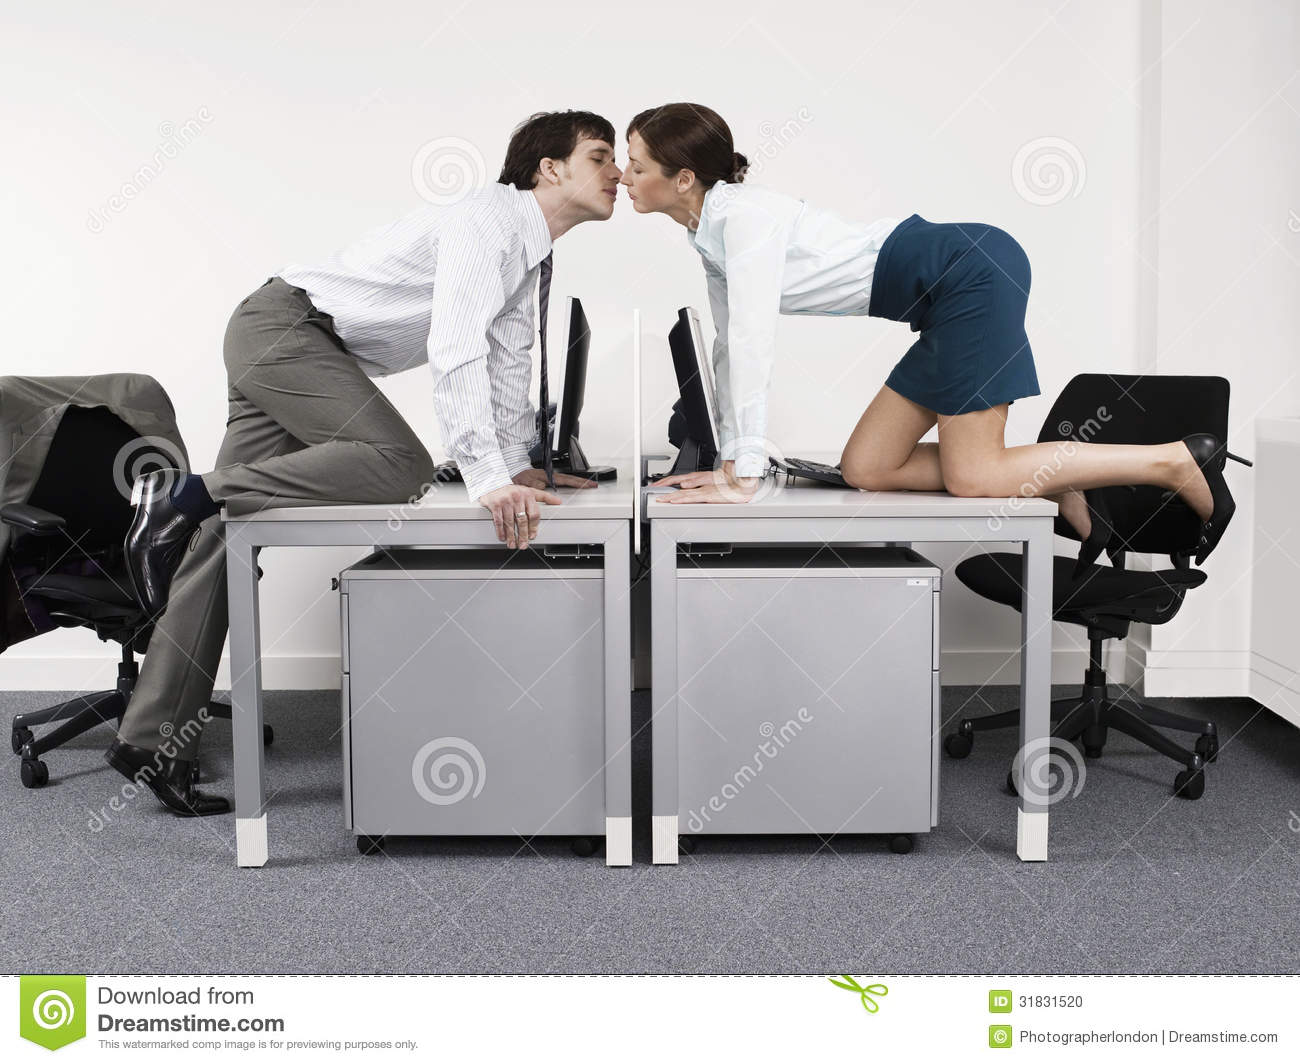 Business Couple Kissing Over Desks In Office